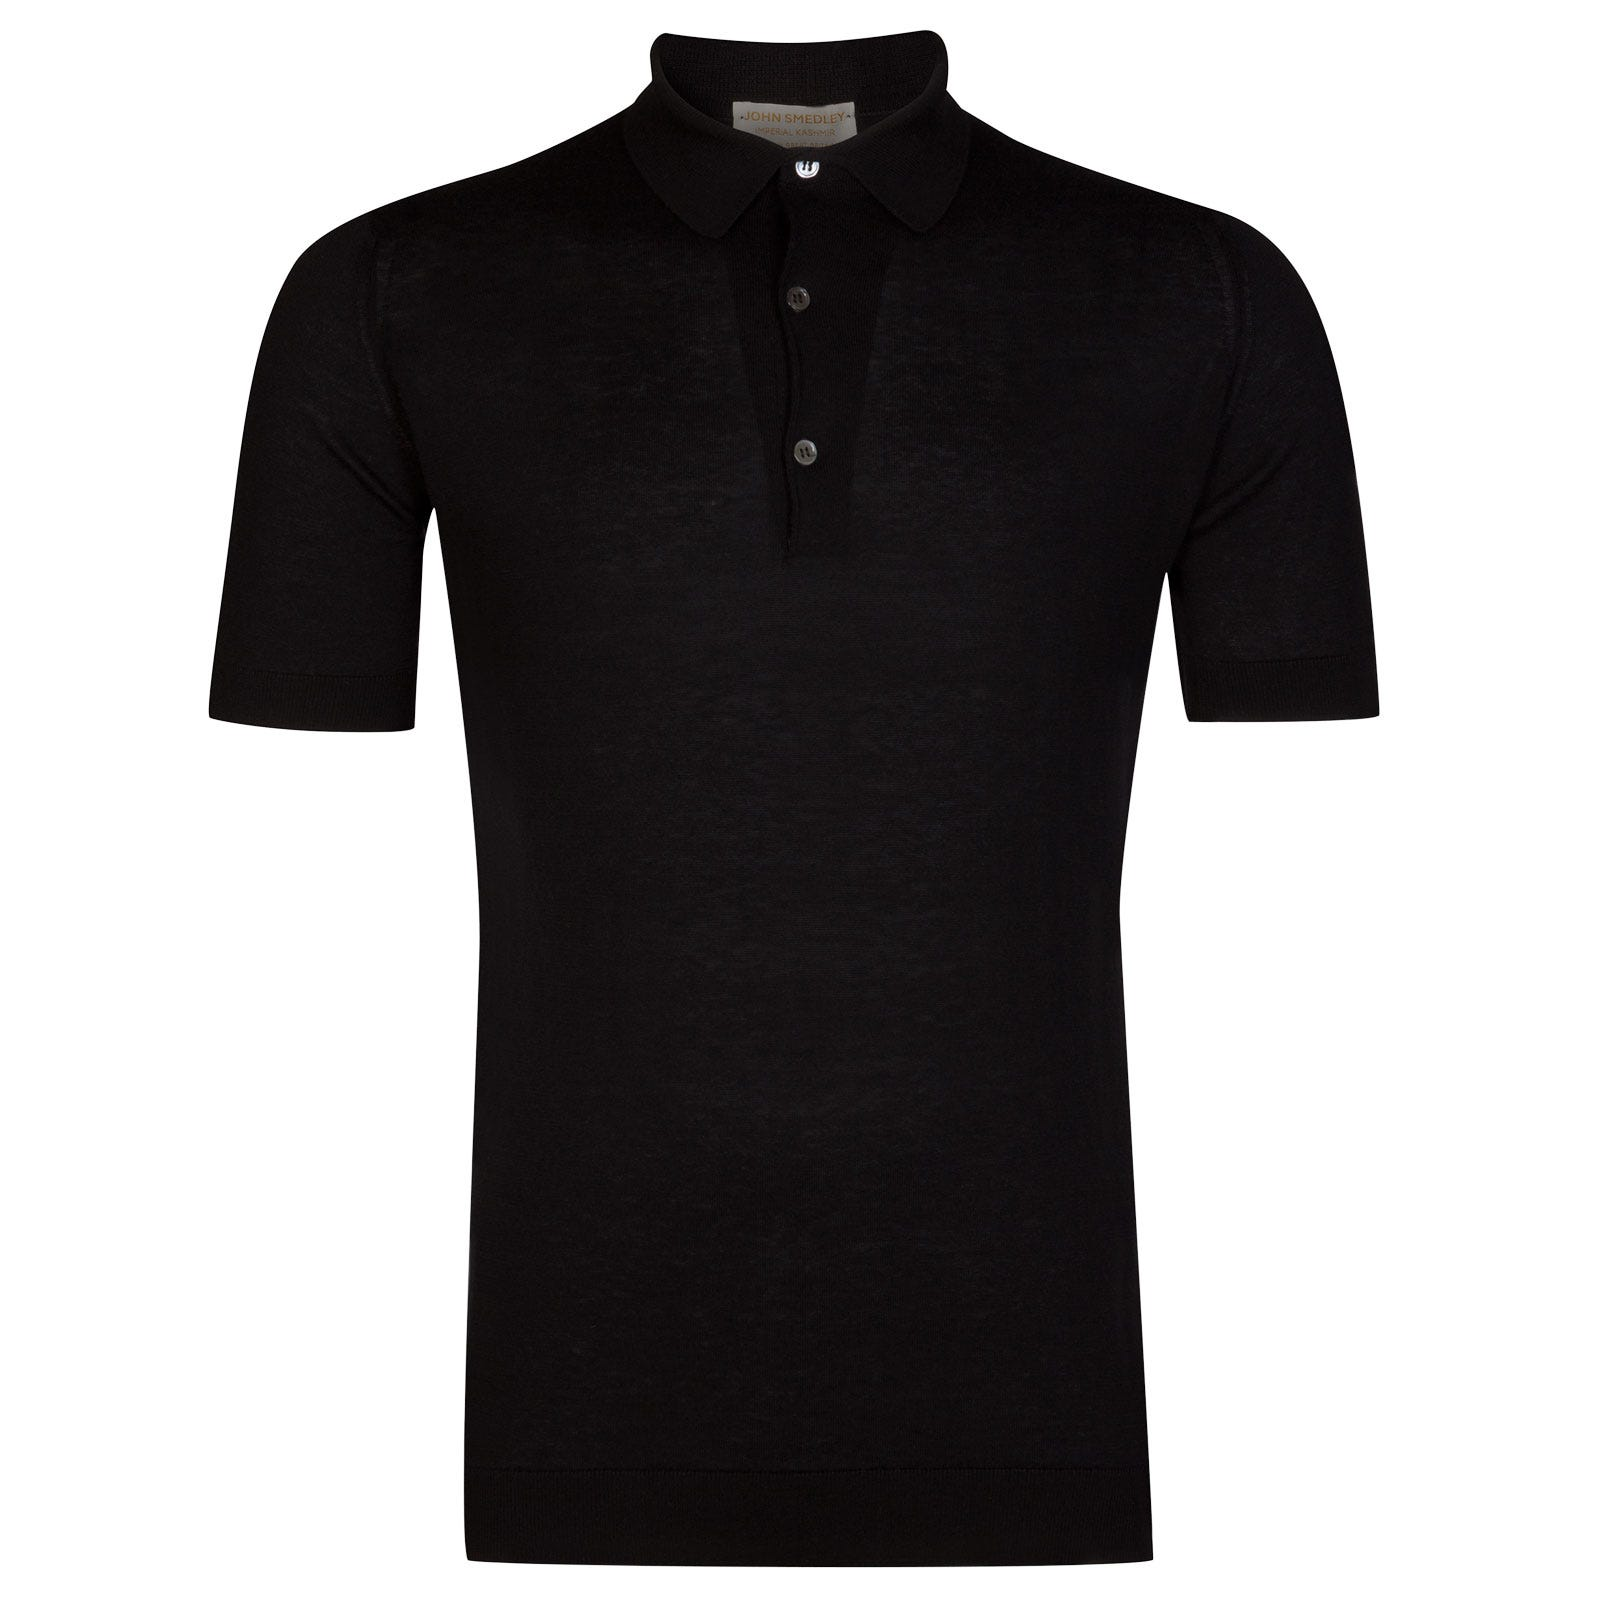 John Smedley Haddon Sea Island Cotton and Cashmere Shirt in Black-XL